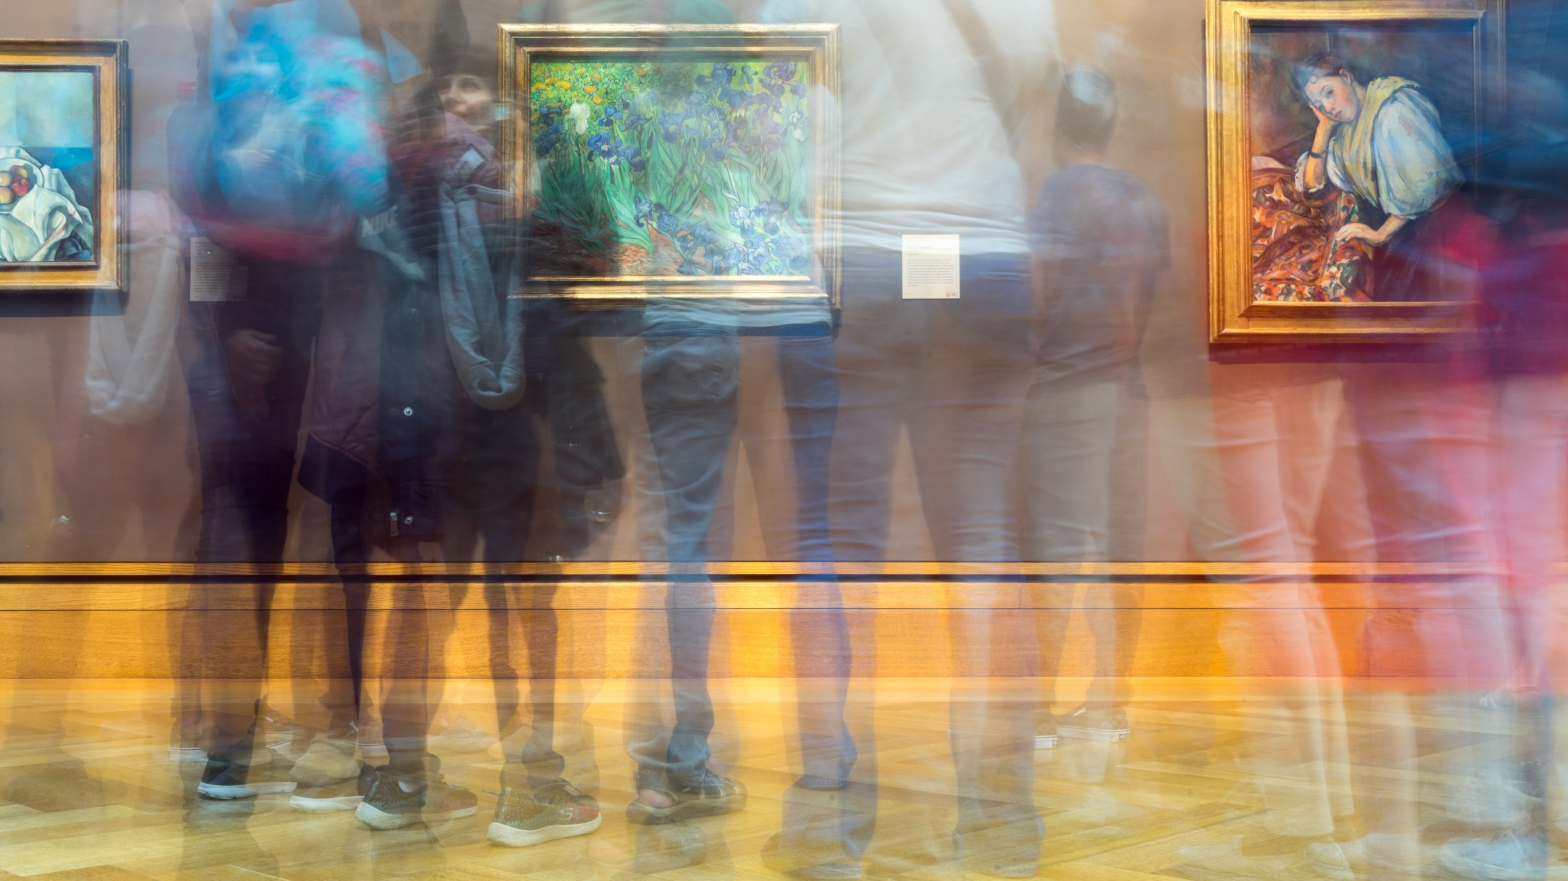 Image shows a group of people standing in front of paintings in an art gallery. The photo has been taken with slow shutter speed so that the people are blurred and the paintings are in focus.